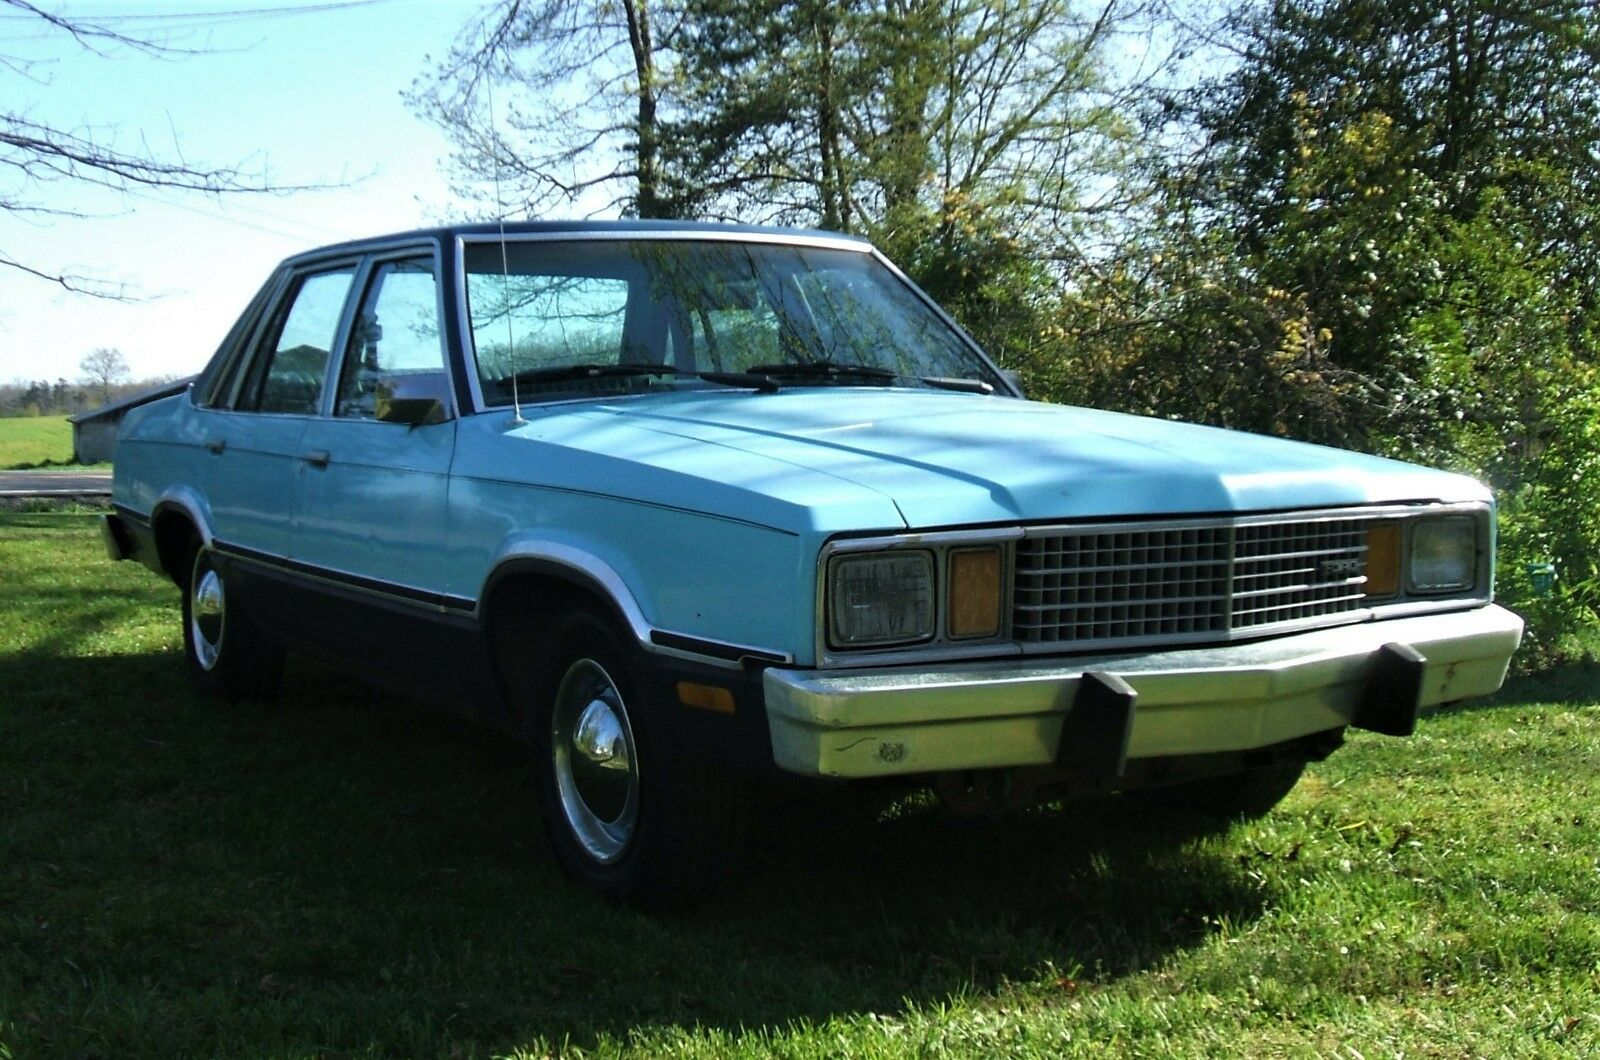 1979 Ford Fairmont  We have owned this car for 22 years